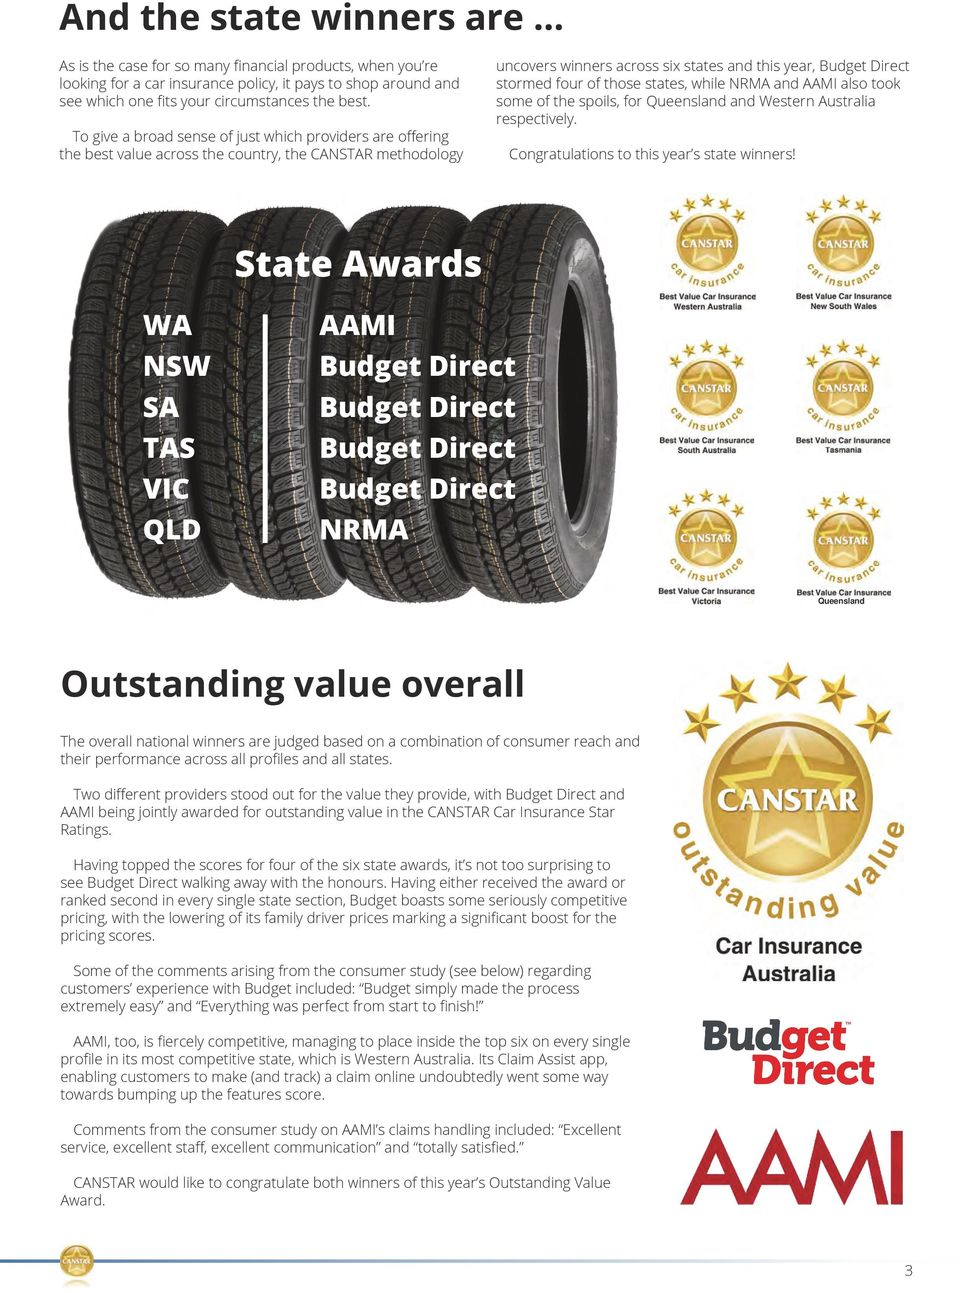 those states, while NRMA and AAMI also took some of the spoils, for Queensland and Western Australia respectively. Congratulations to this year s state winners!